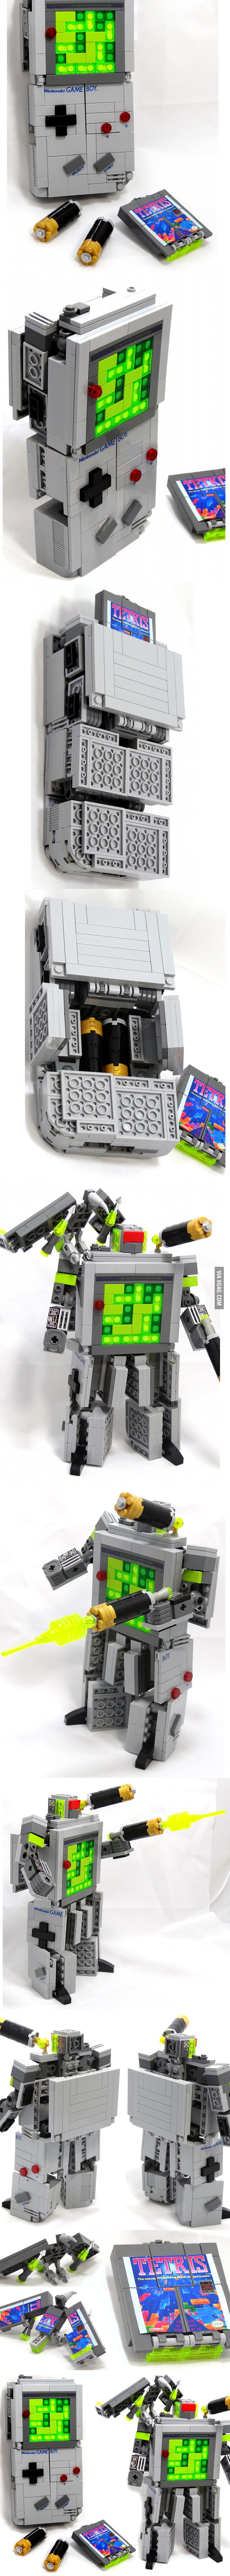 So I heard you like lego, transformer and game boy